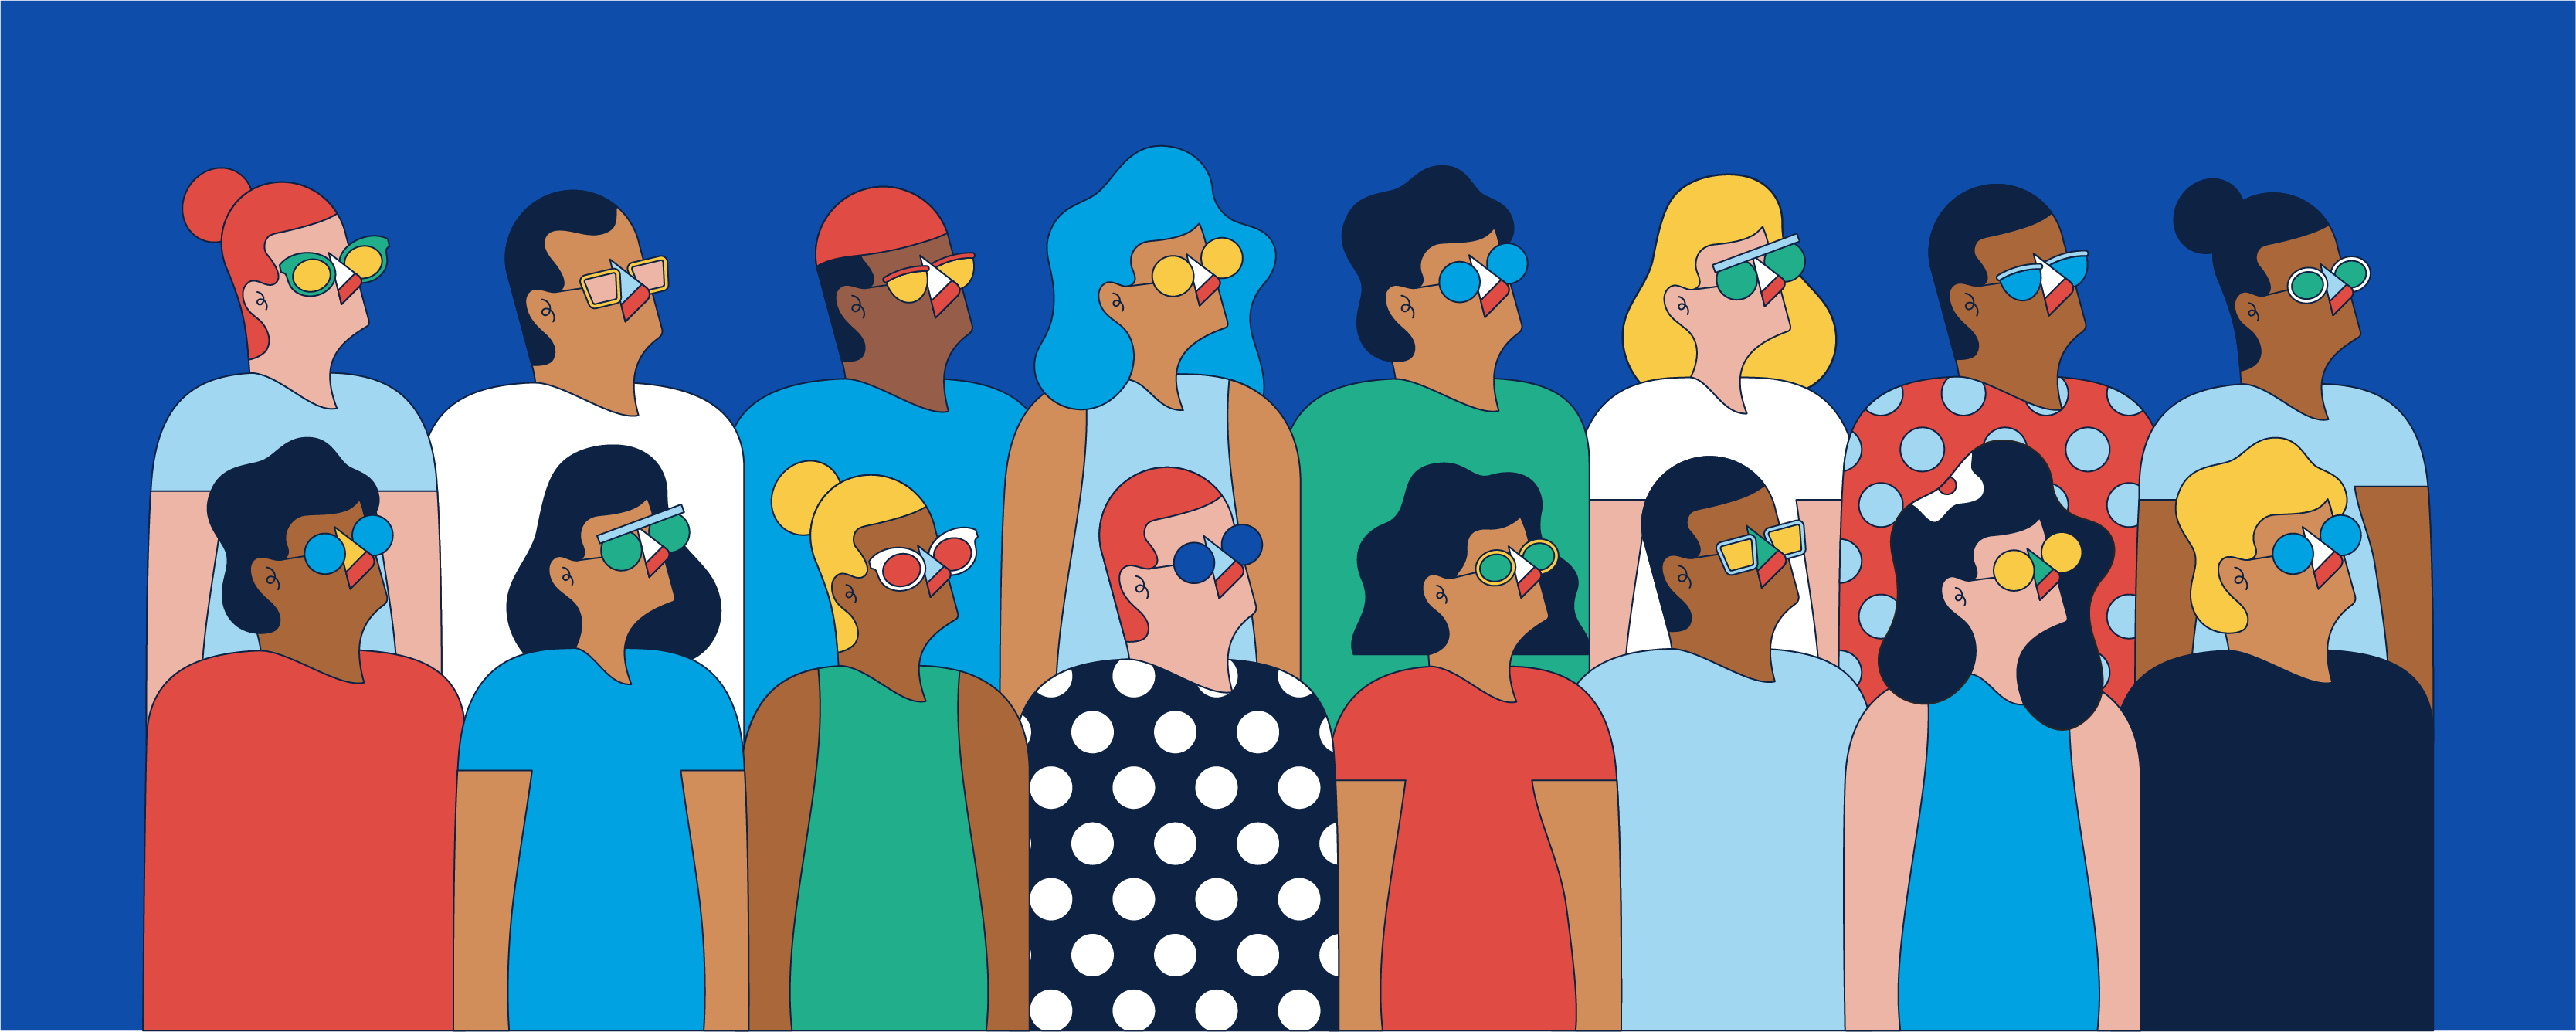 Cartoon From Warby Parker with people wearing glasses